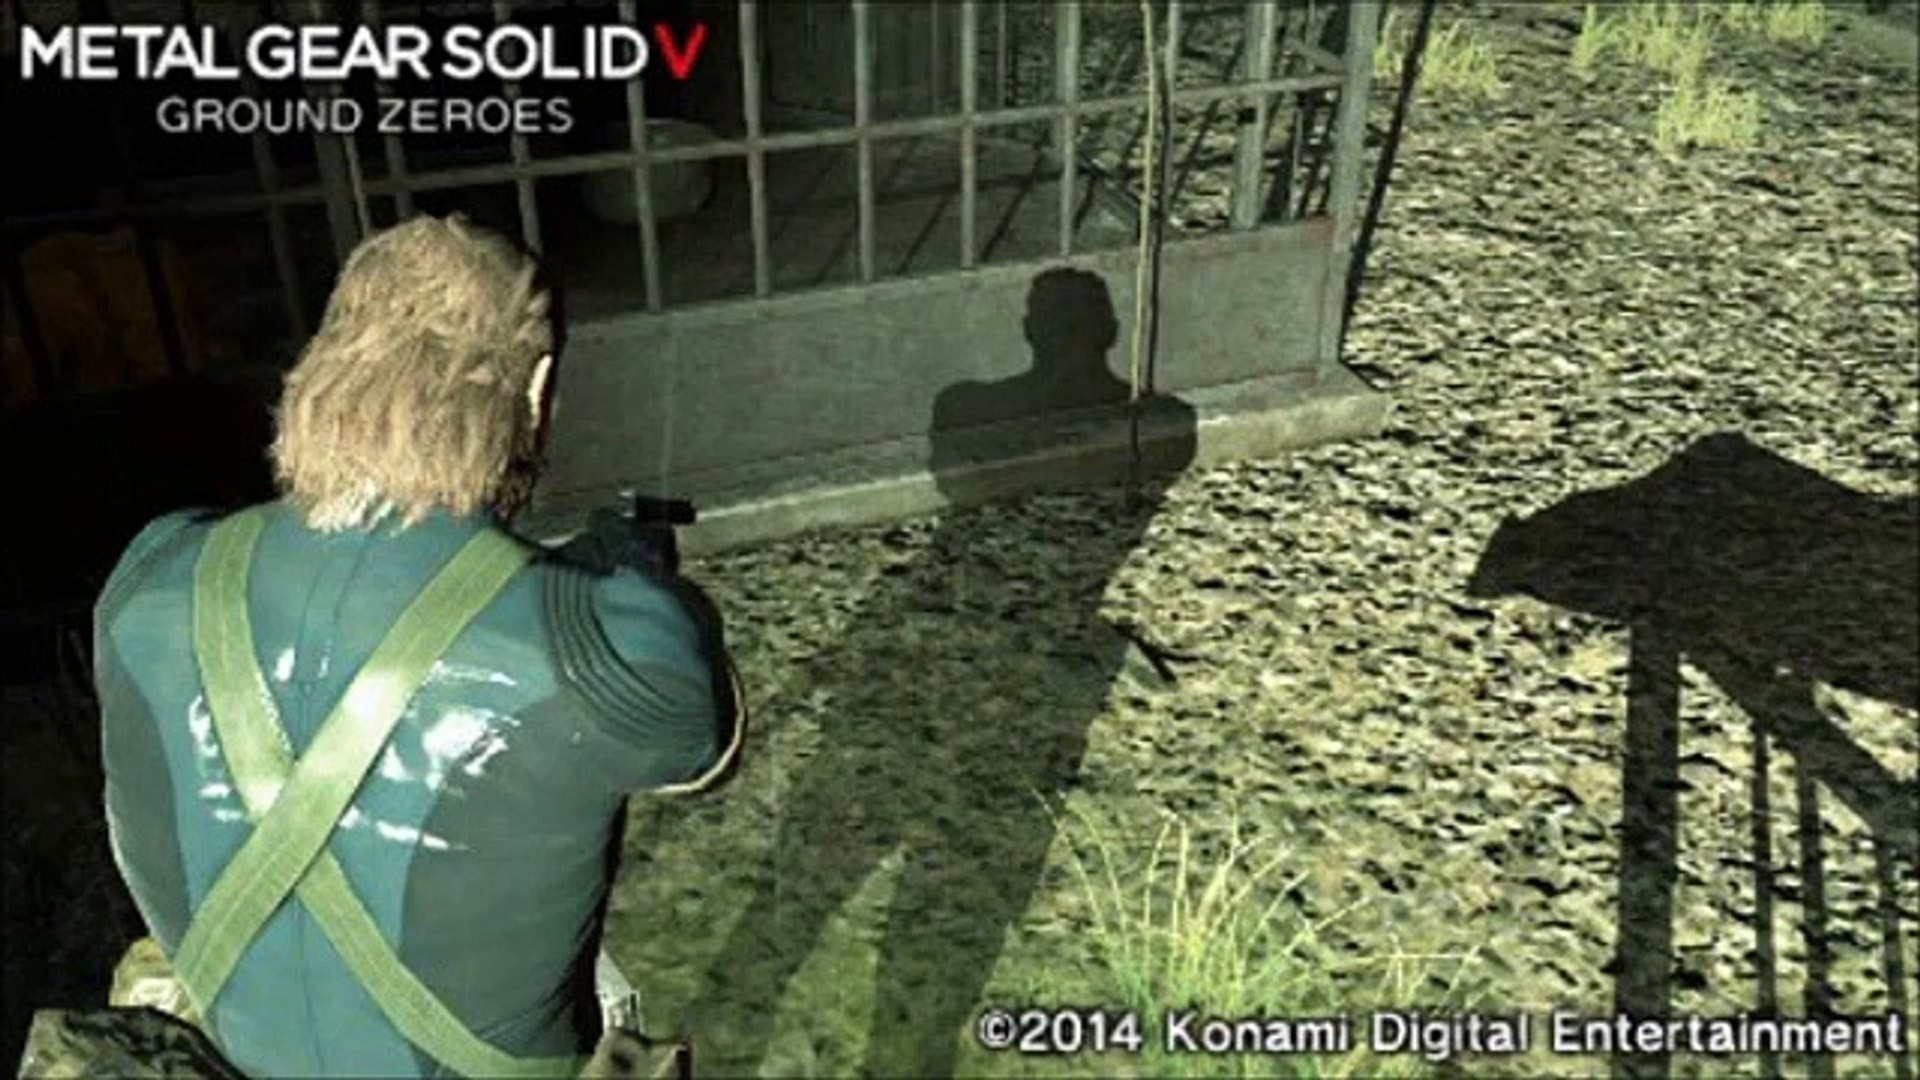 Big Boss Vs Chico Shadows Mgsv Ground Zeroes Discussion